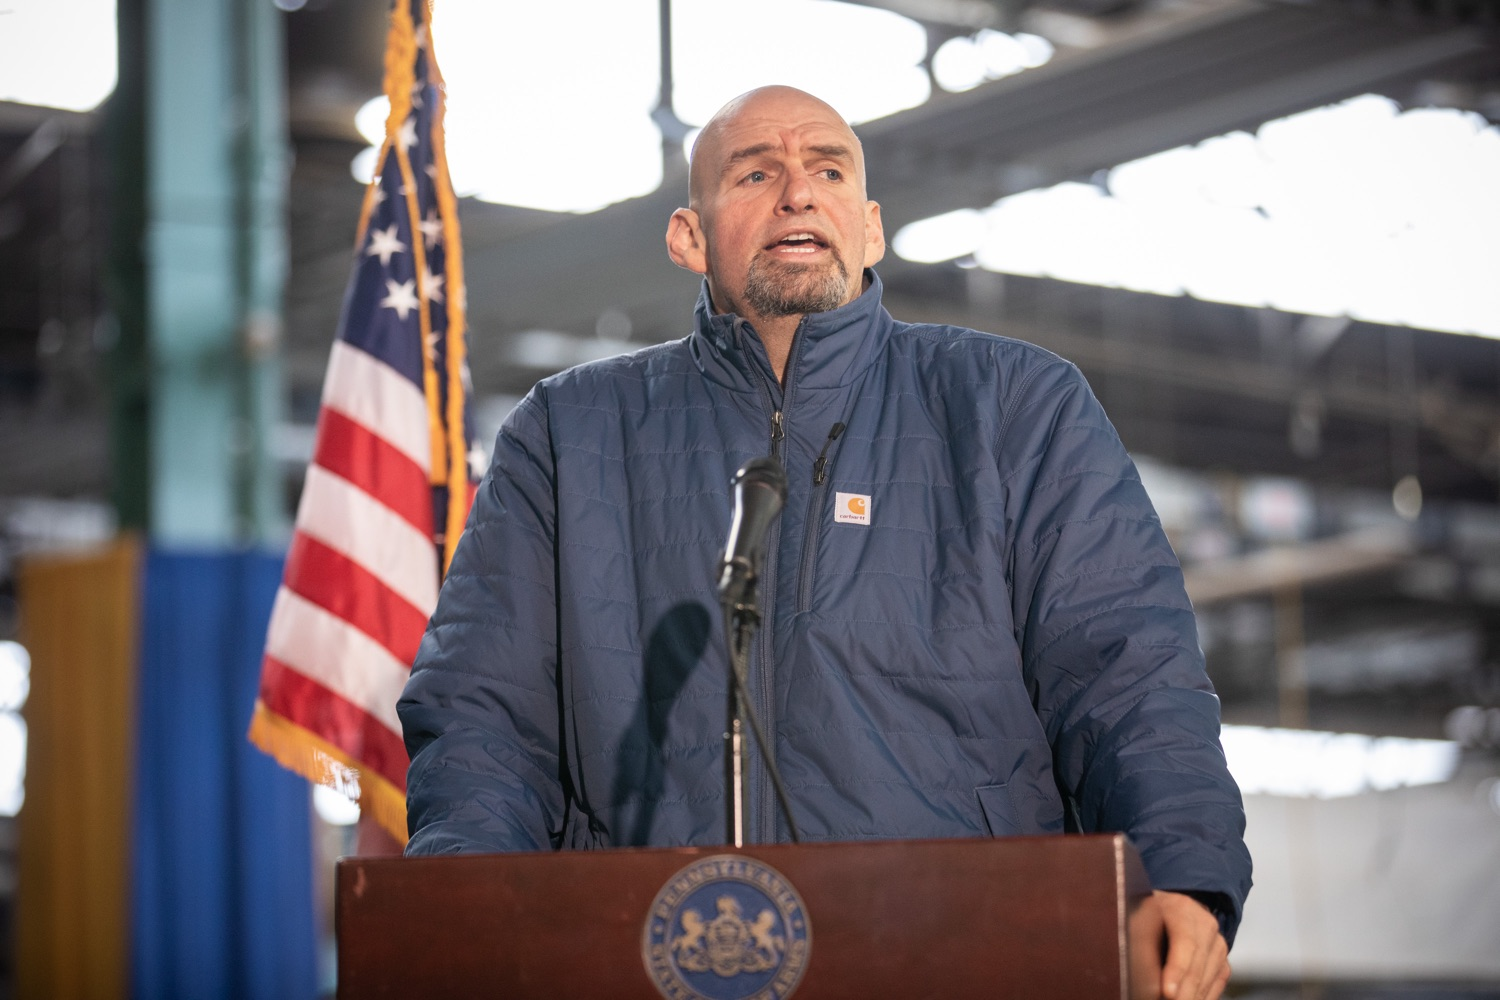 "<a href=""https://filesource.wostreaming.net/commonwealthofpa/photo/17646_agric_butter_sculpture_dz_011.jpg"" target=""_blank"">⇣ Download Photo<br></a>Lt. Governor John Fetterman speaking at the Pennsylvania Farm Show butter sculpture unveiling.Lt. Governor John Fetterman and Secretary of Agriculture Russell Redding today unveiled the 2020 Pennsylvania Farm Show butter sculpture, carved from a half-ton of butter depicting three of Pennsylvanias beloved professional sports mascots: Philadelphia Flyers Gritty, Philadelphia Eagles Swoop, and Pittsburgh Steelers Steely McBeam celebrating with a spread of Pennsylvania dairy products. The sculpture, a long-time Farm Show staple, encourages Pennsylvanians to be a fan of Pennsylvania dairy and give a cheer to the more than 6,200 dairy farmers in the commonwealth.  Harrisburg, PA  January 2, 2020"